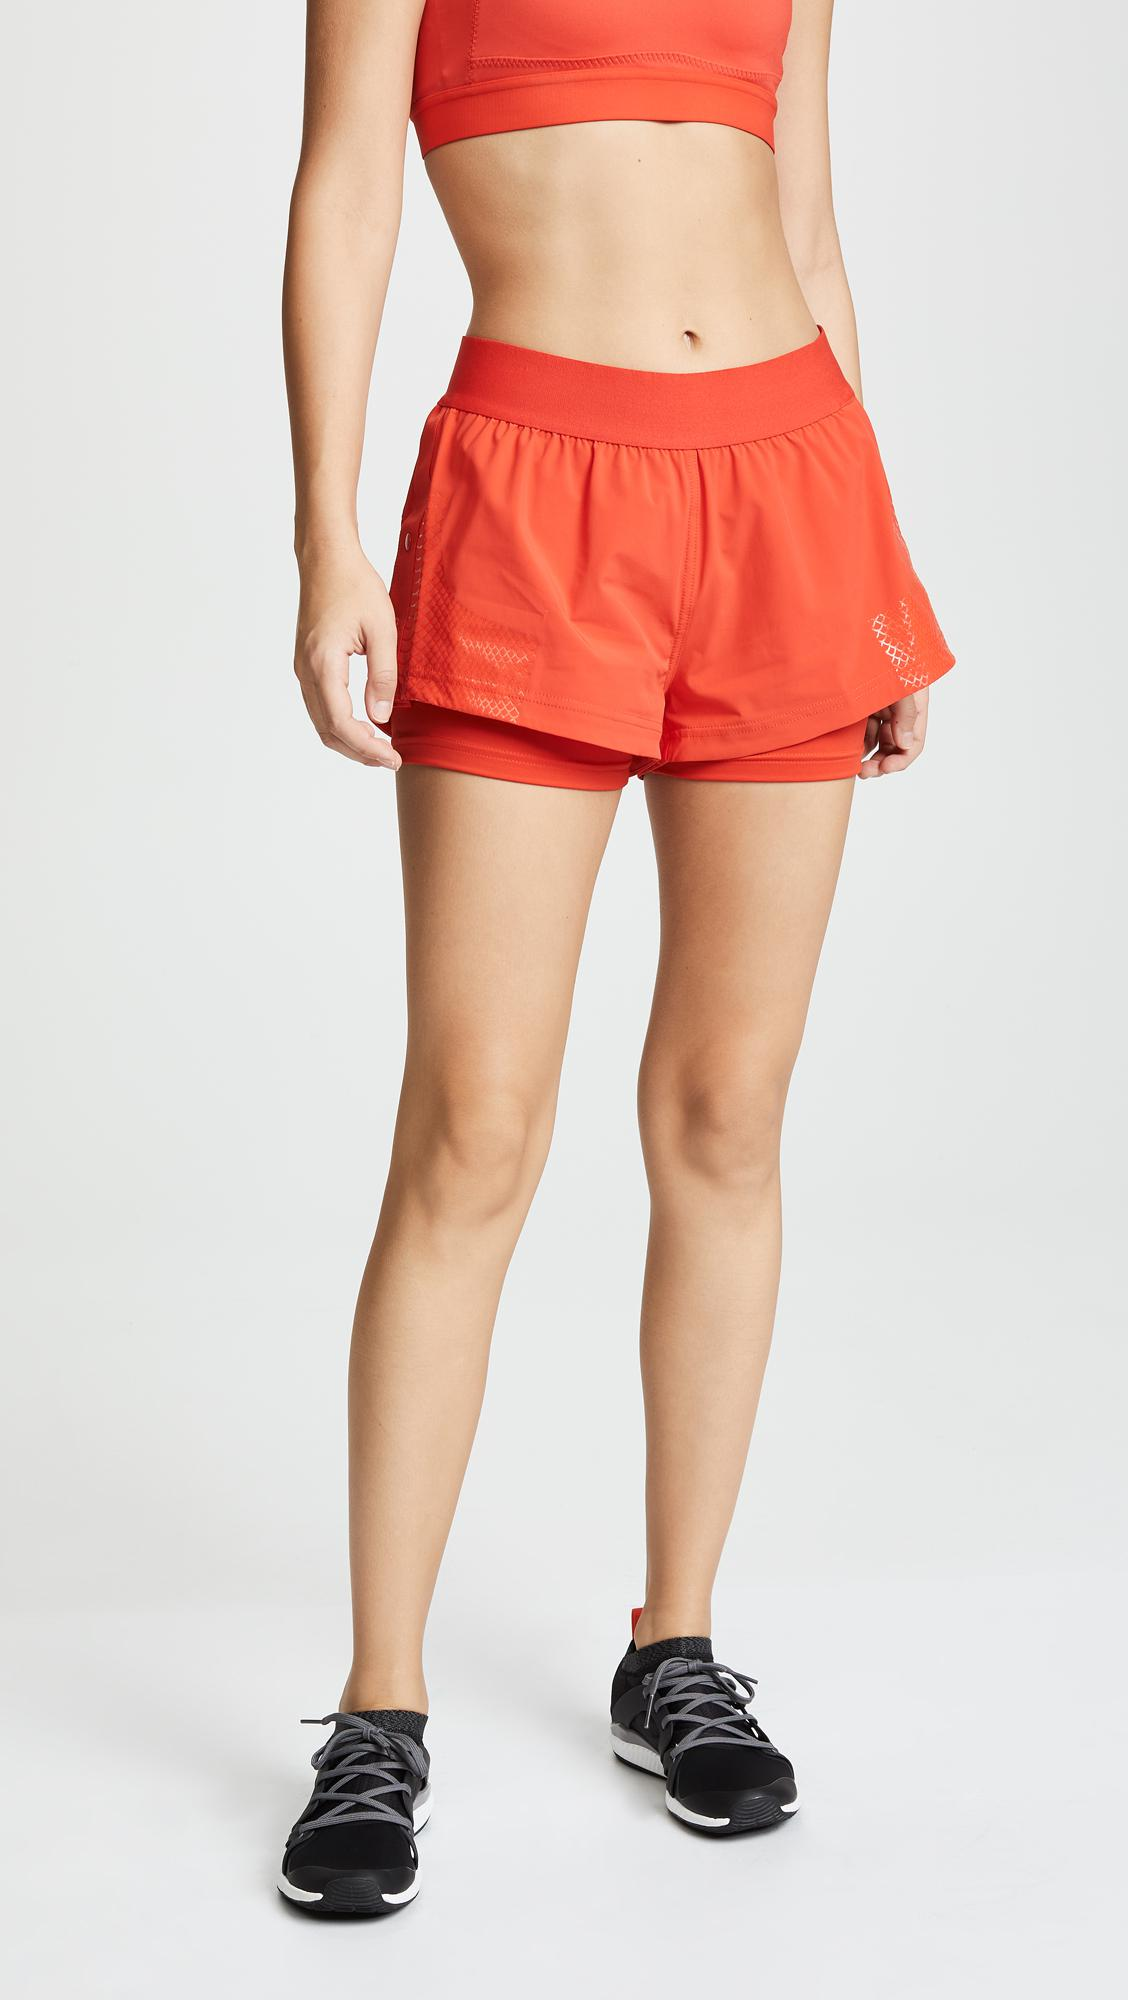 84464fd2a Adidas By Stella Mccartney Training Shorts in Red - Lyst